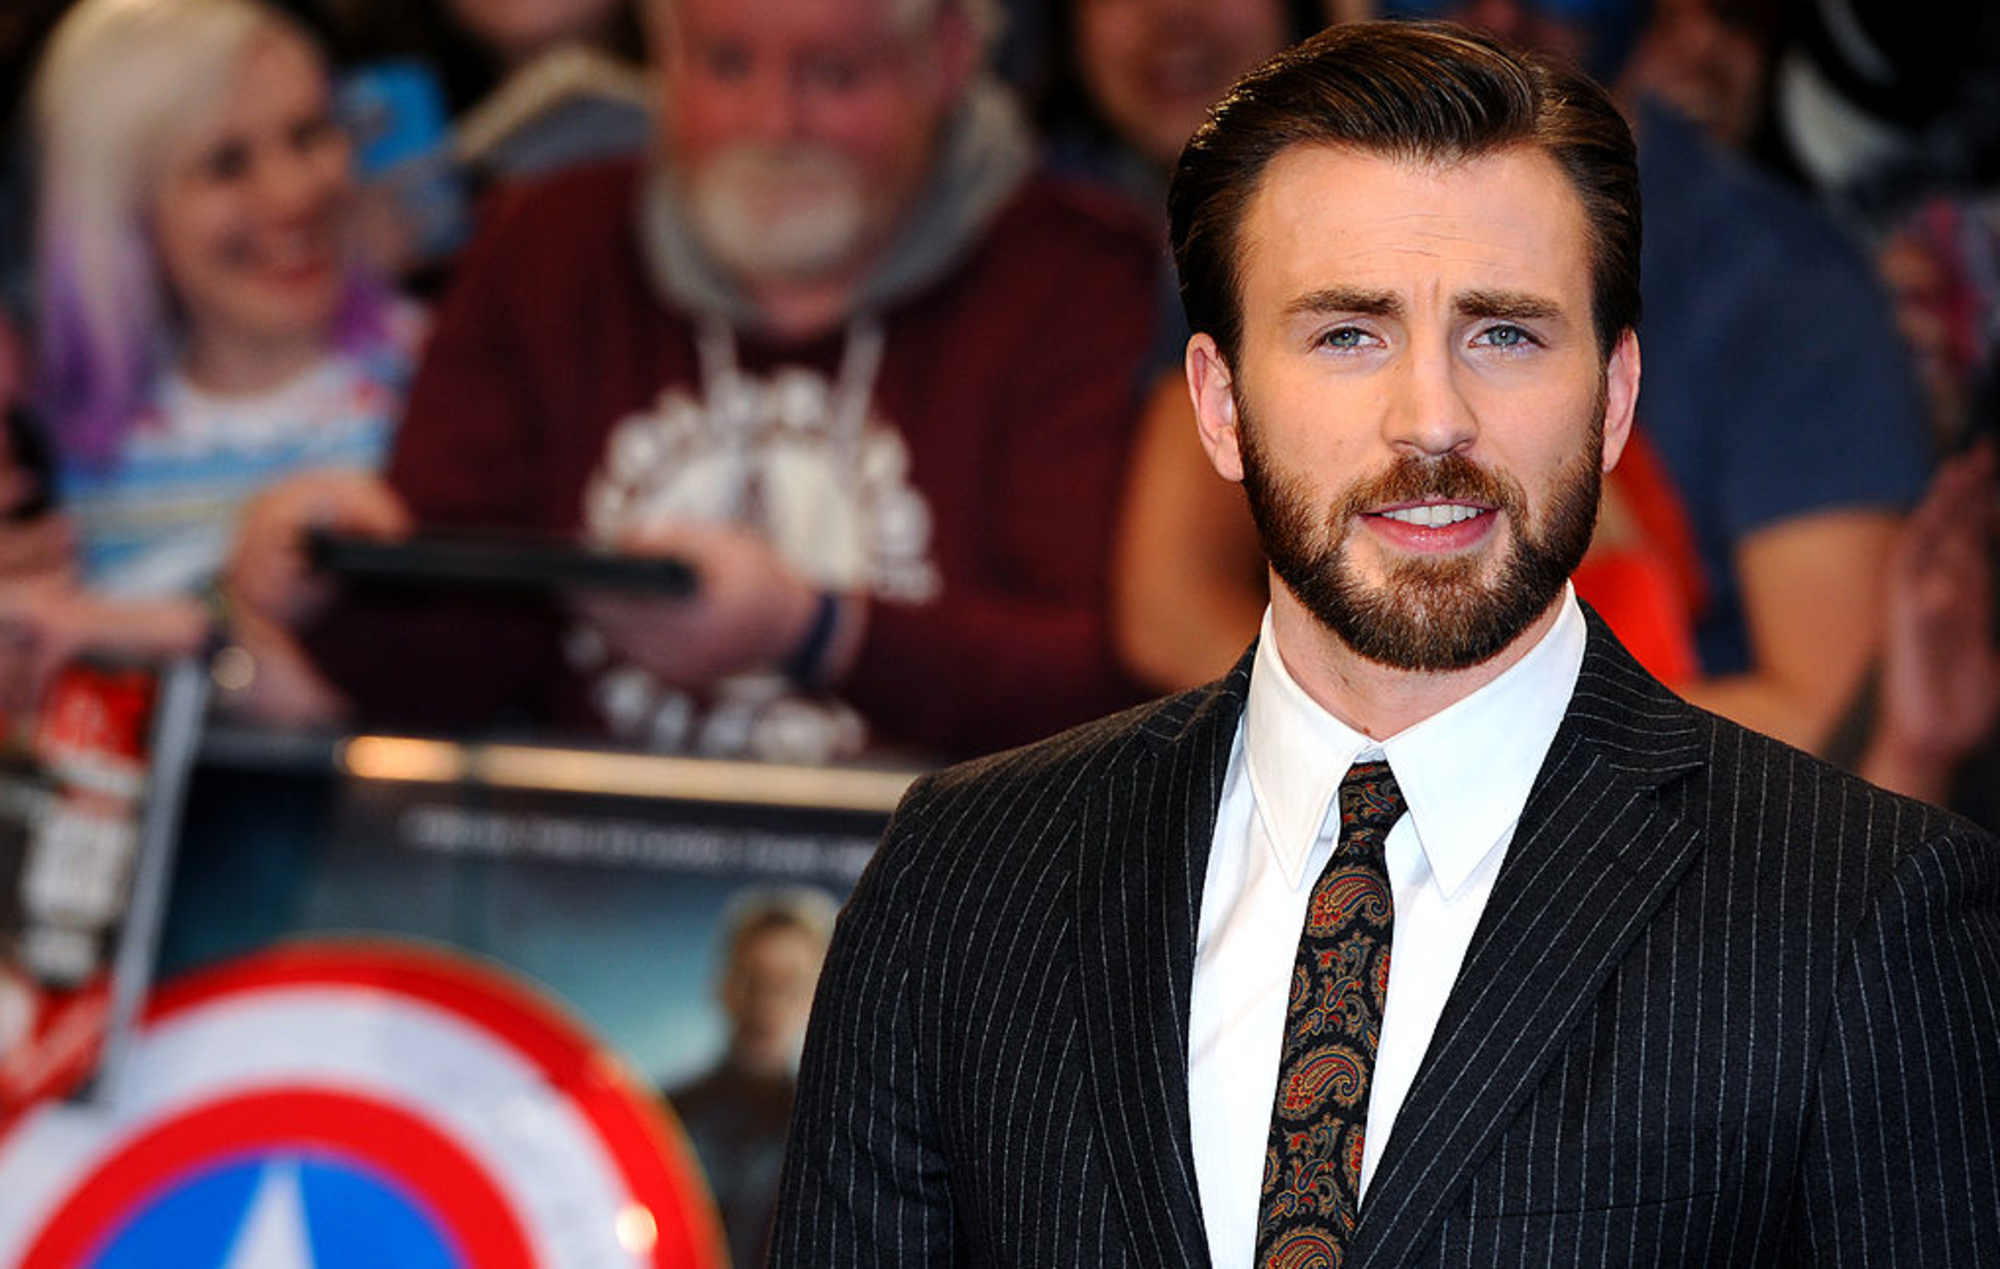 Chris Evans expected to return to MCU as Captain America